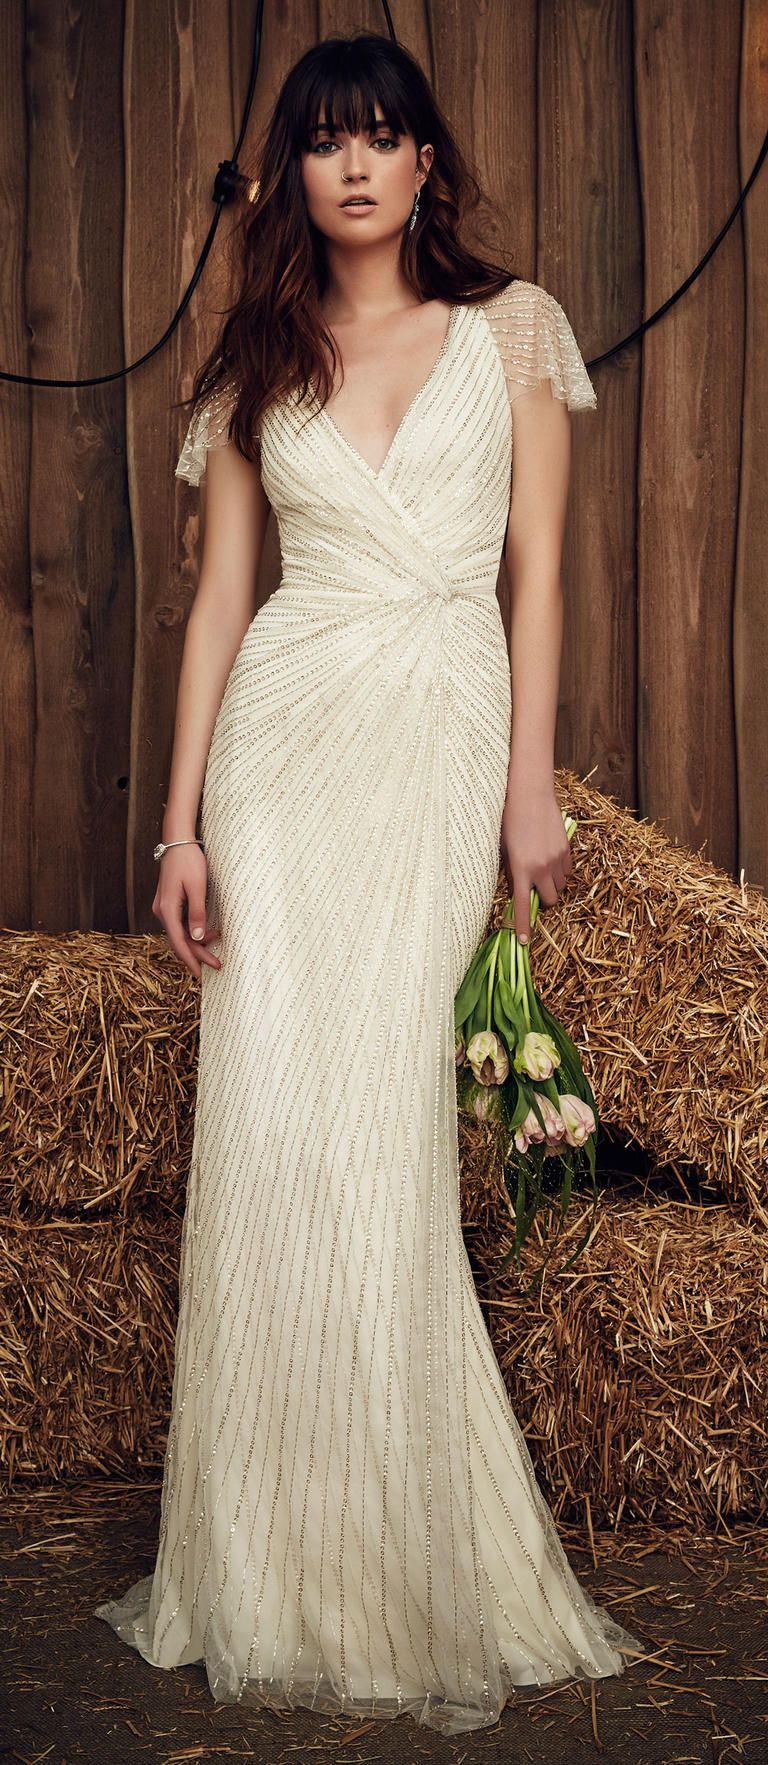 15 wedding dresses perfect for an elopement 8 wedding dress 15 wedding dresses perfect for an elopement 8 wedding dress with cap sleeves ombrellifo Images